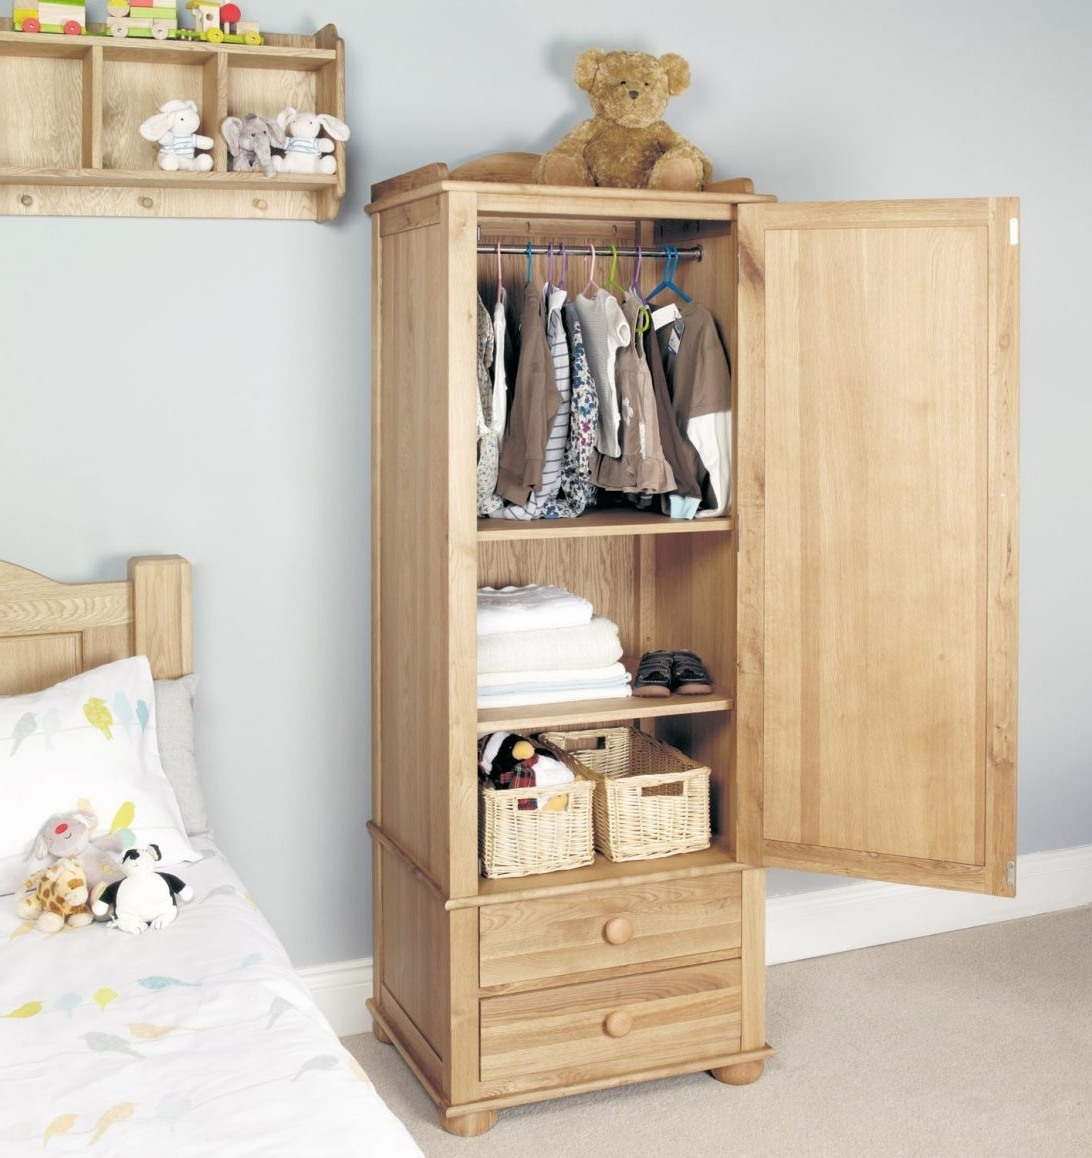 2018 Single Wardrobe With Drawers Ikea Small Childrens Oak Black Uk With Regard To Childrens Wardrobes With Drawers And Shelves (View 3 of 15)